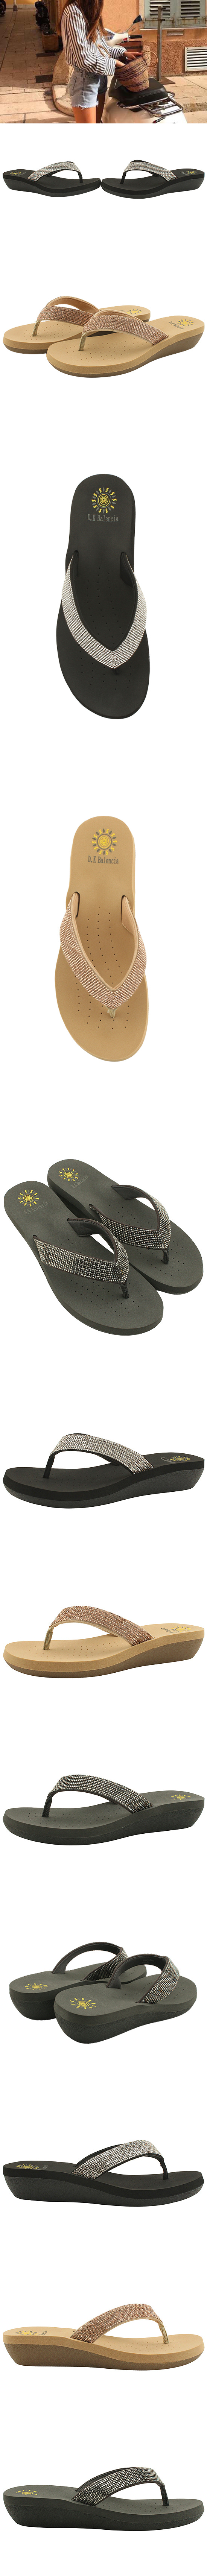 Soft Cushioning Flip-Flop Slippers Gray